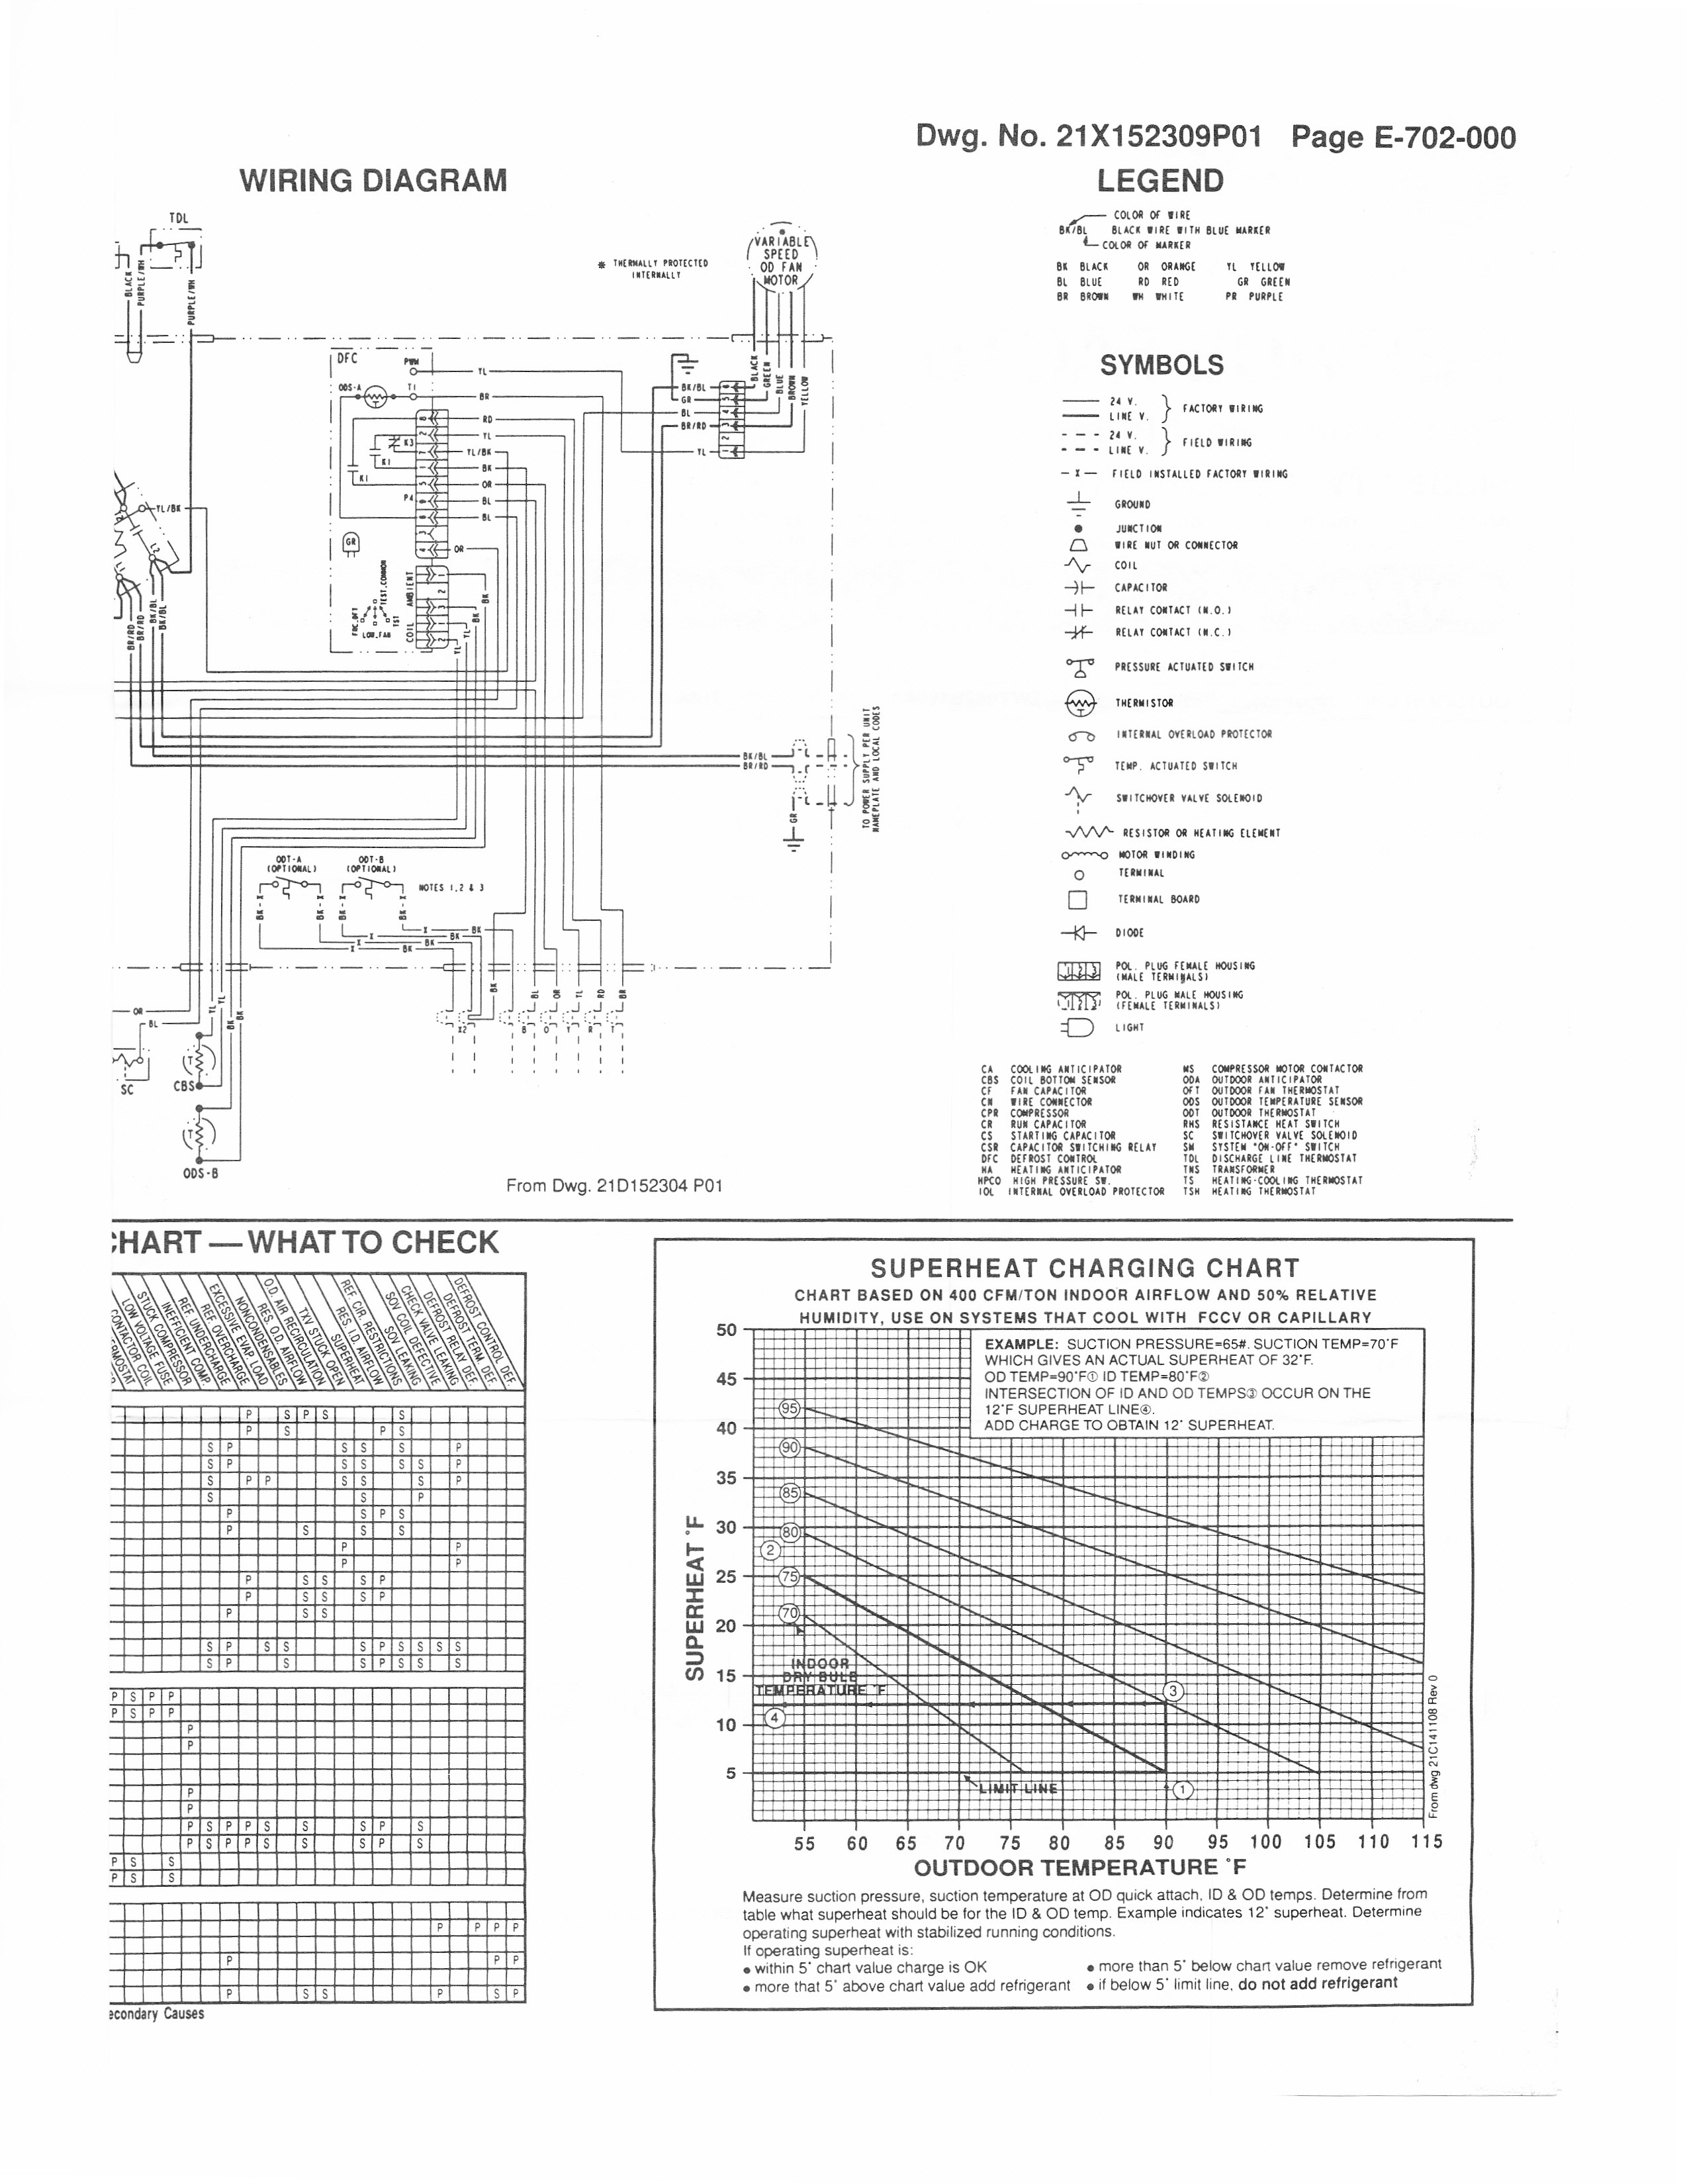 trane xe 900 air conditioner wiring diagram for central xr13 collection